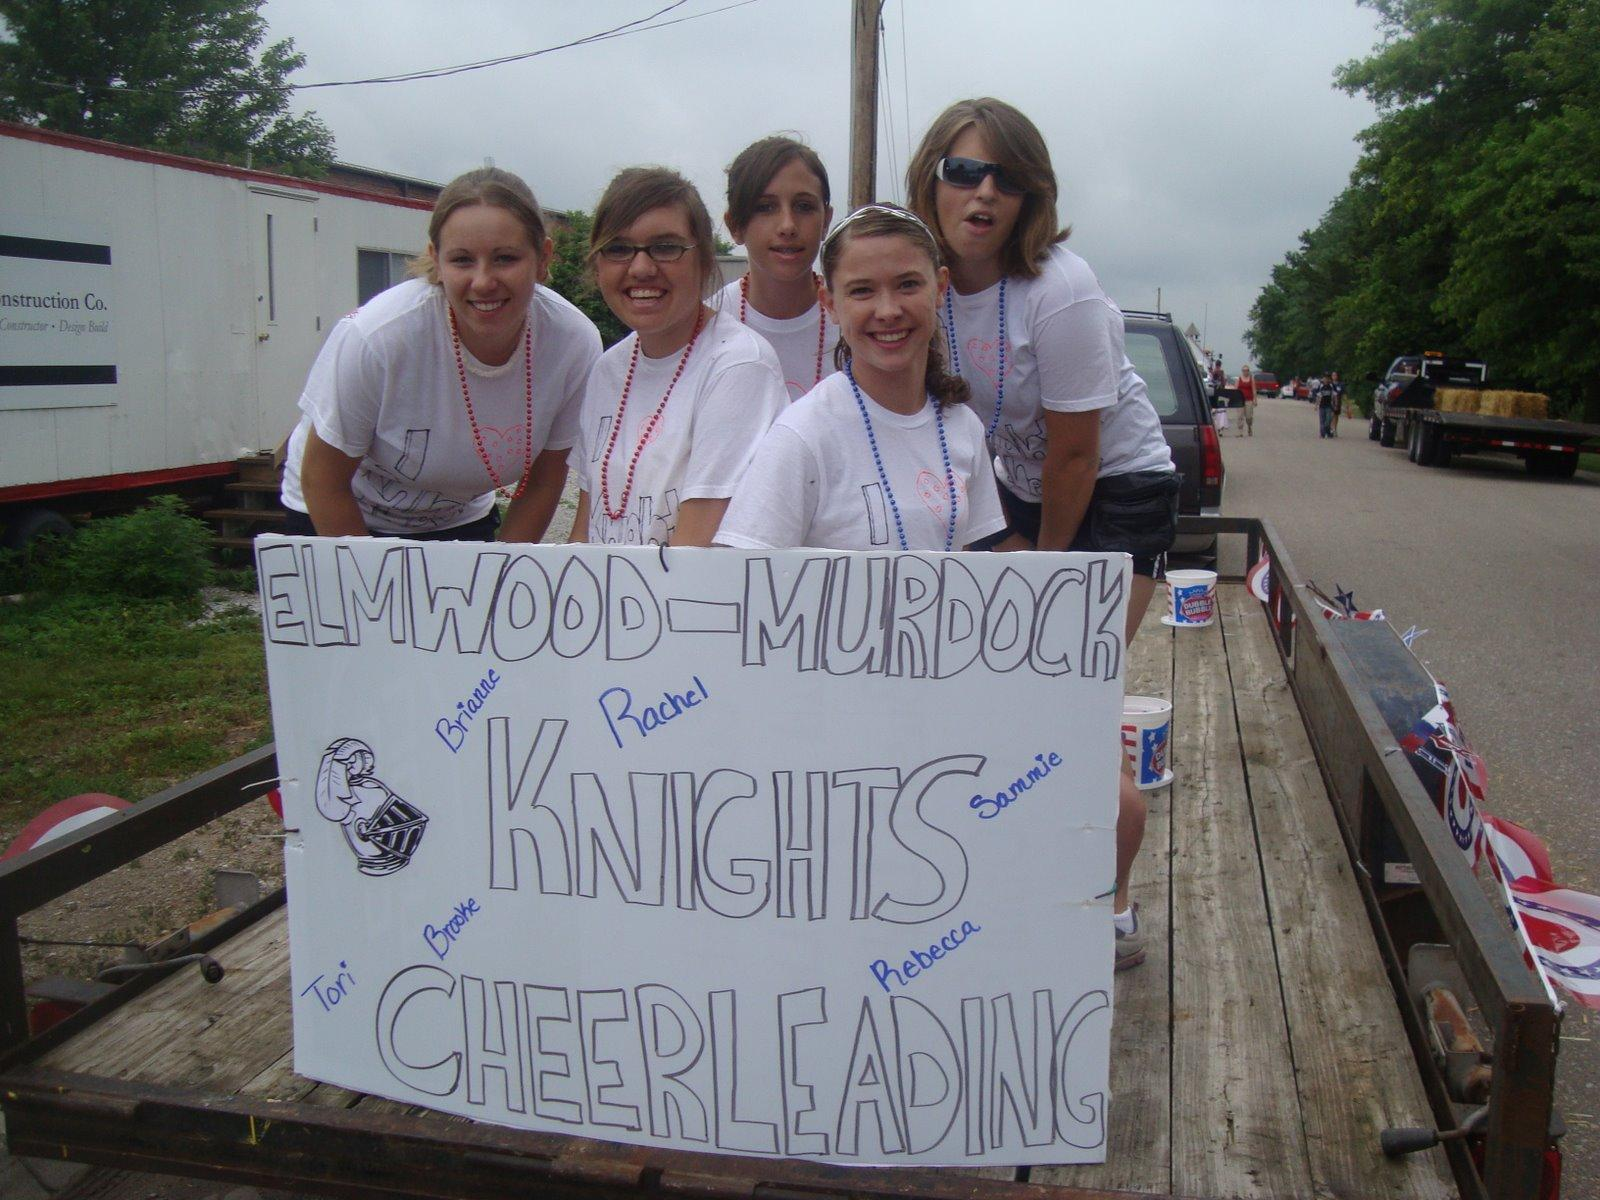 Cheerleaders_sign